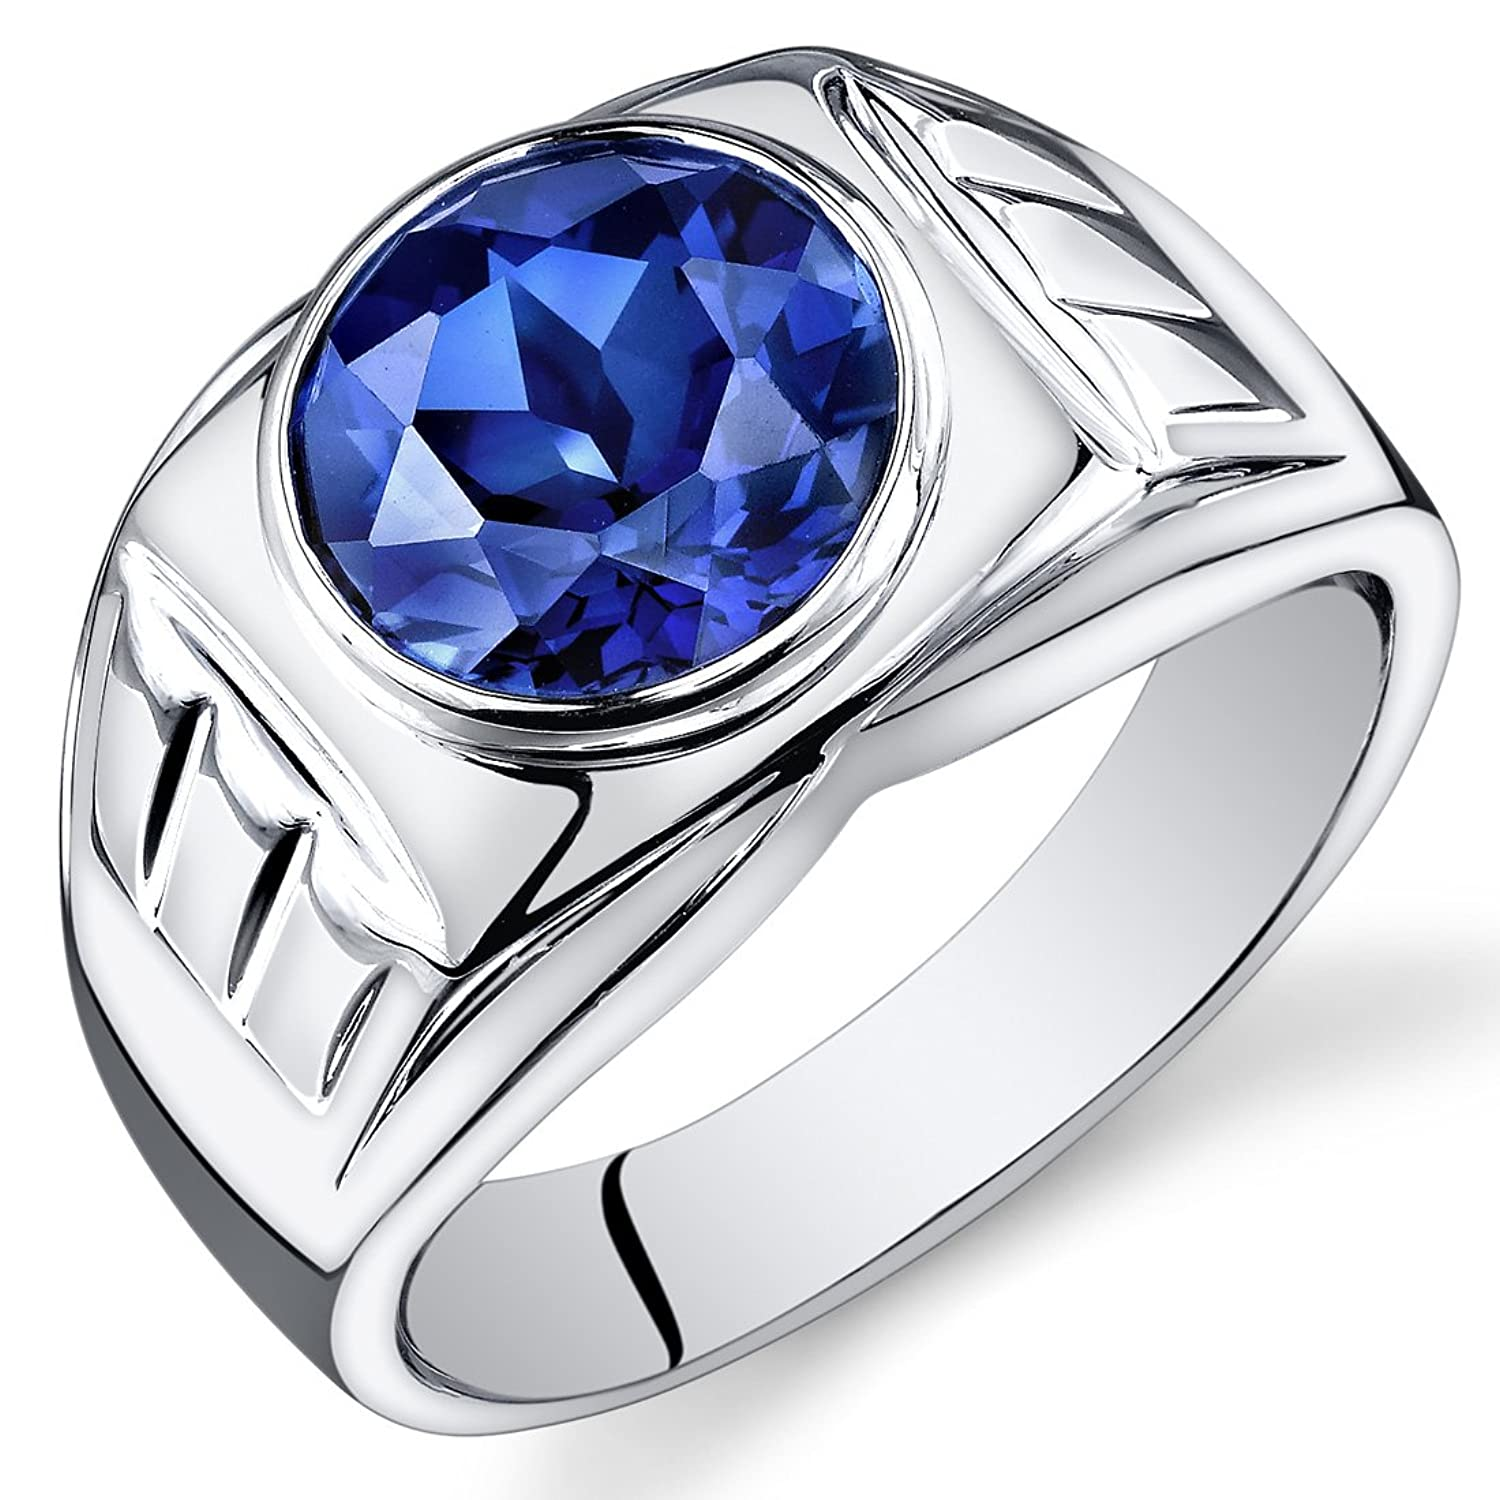 Blue Sapphire Ring For Men Price Mens 5 50 Carats Created Blue